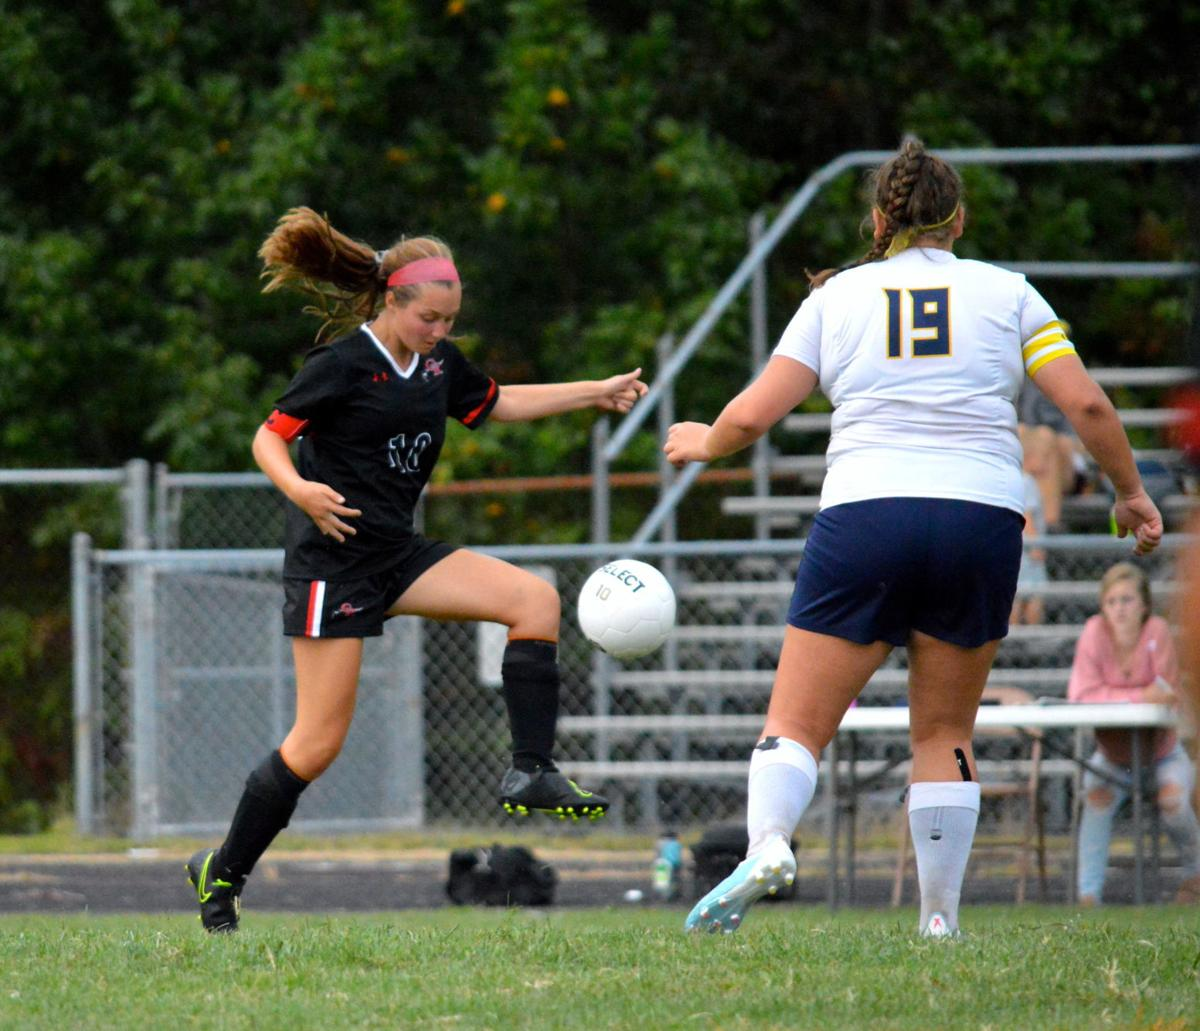 High School Soccer: Kent County at Colonel Richardson